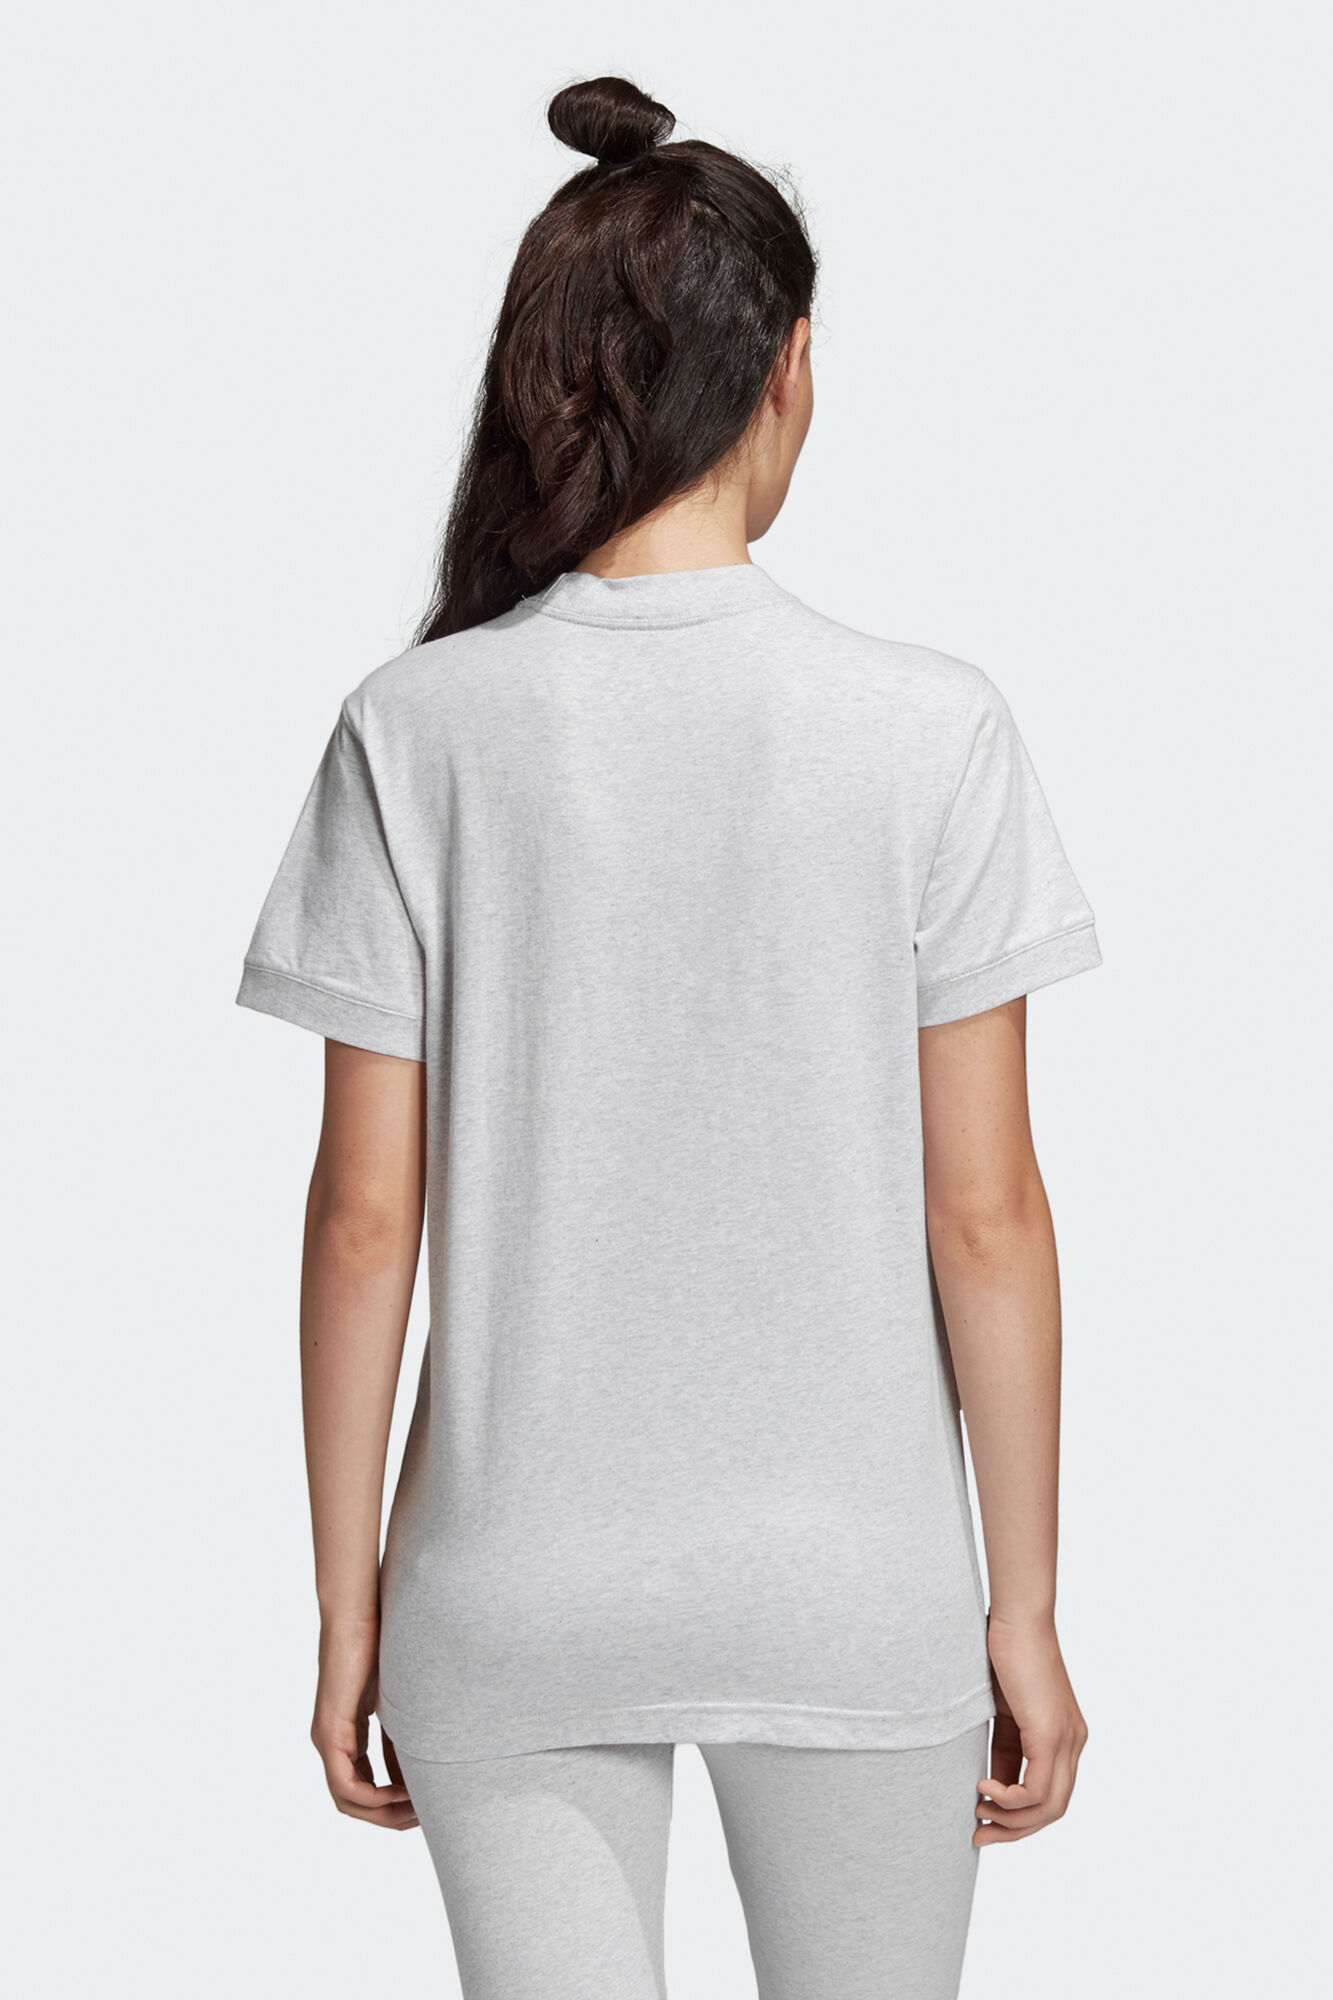 Coeeze T-shirt DU7191, LIGHT GREY HEATHER